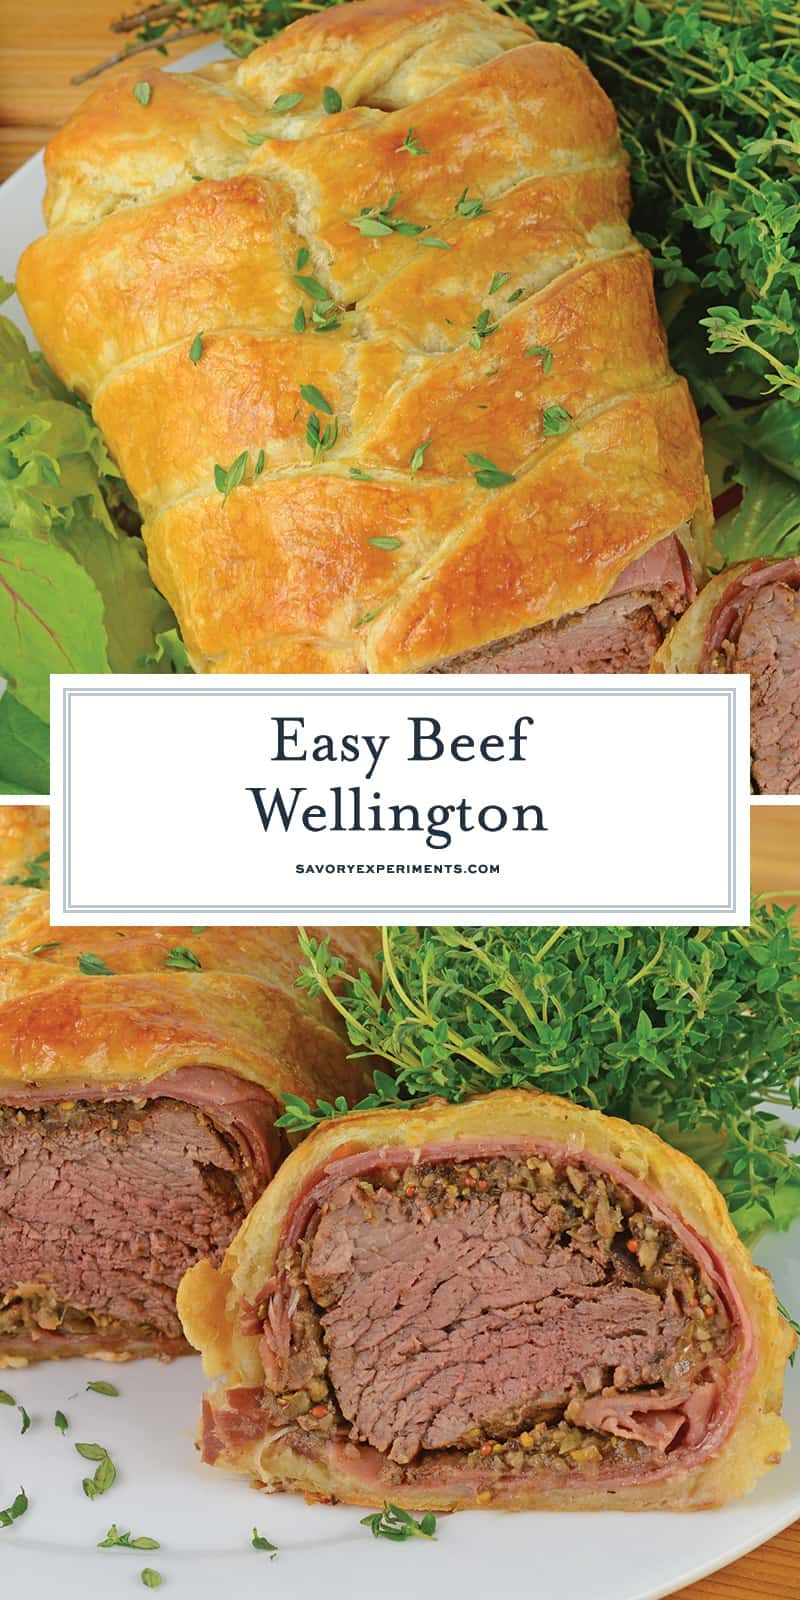 Easy Beef Wellington - A Delectable Puff Pastry Recipe Idea